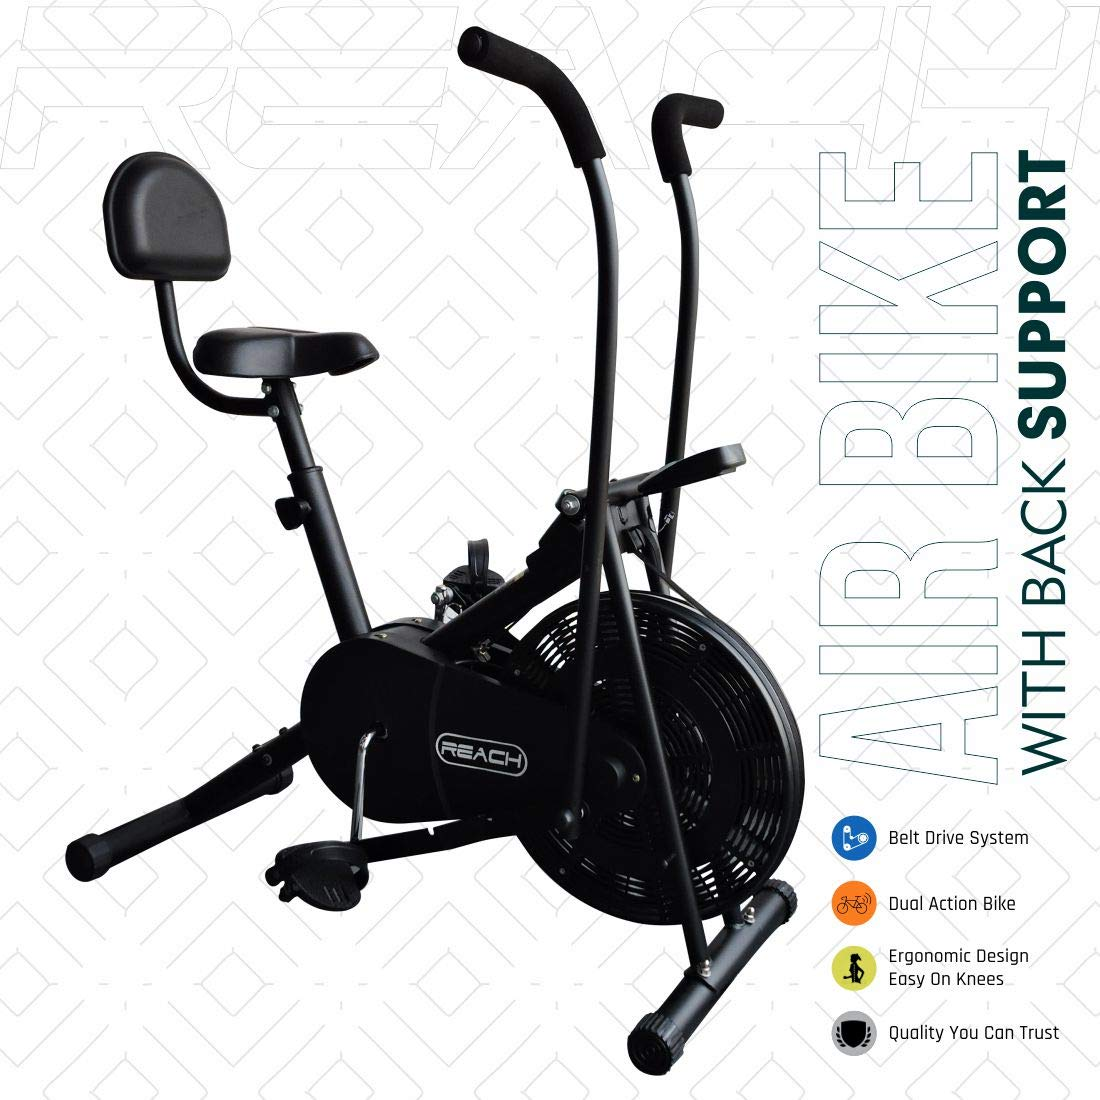 Reach Air Bike Exercise Fitness Cycle with Moving or Stationary Handle Adjustments